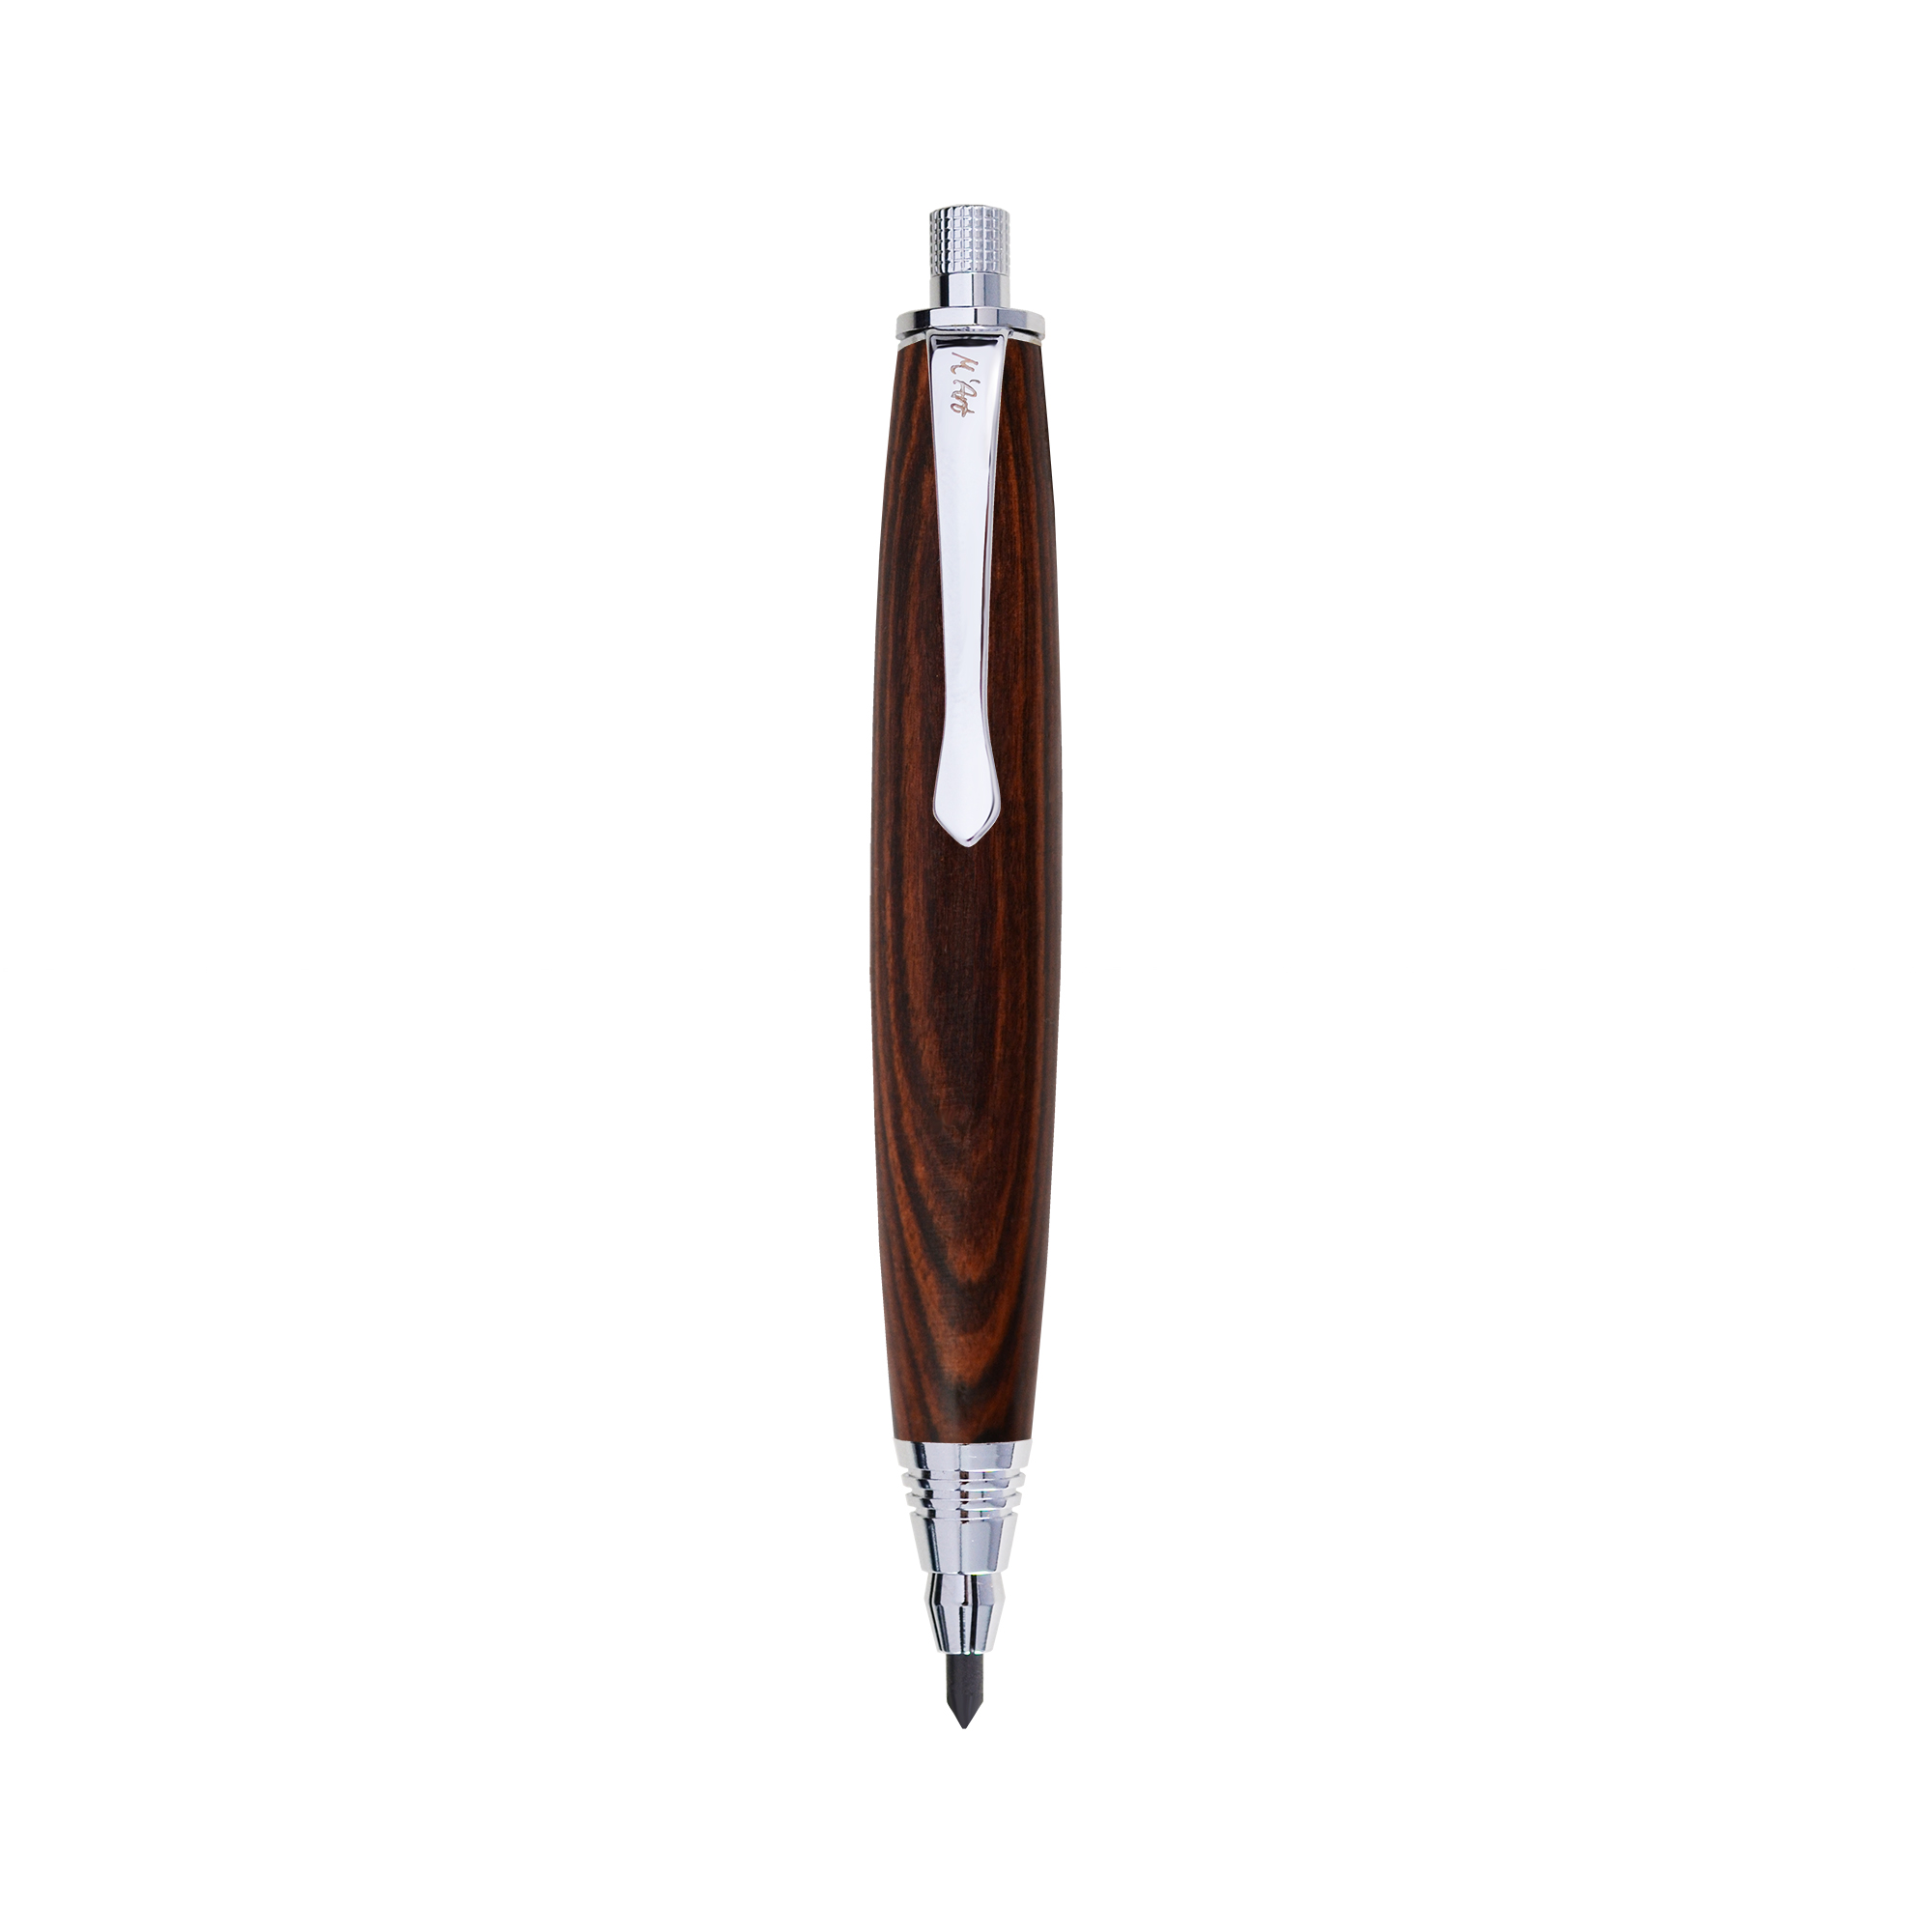 Ligabue pencil in Pau Violeto wood